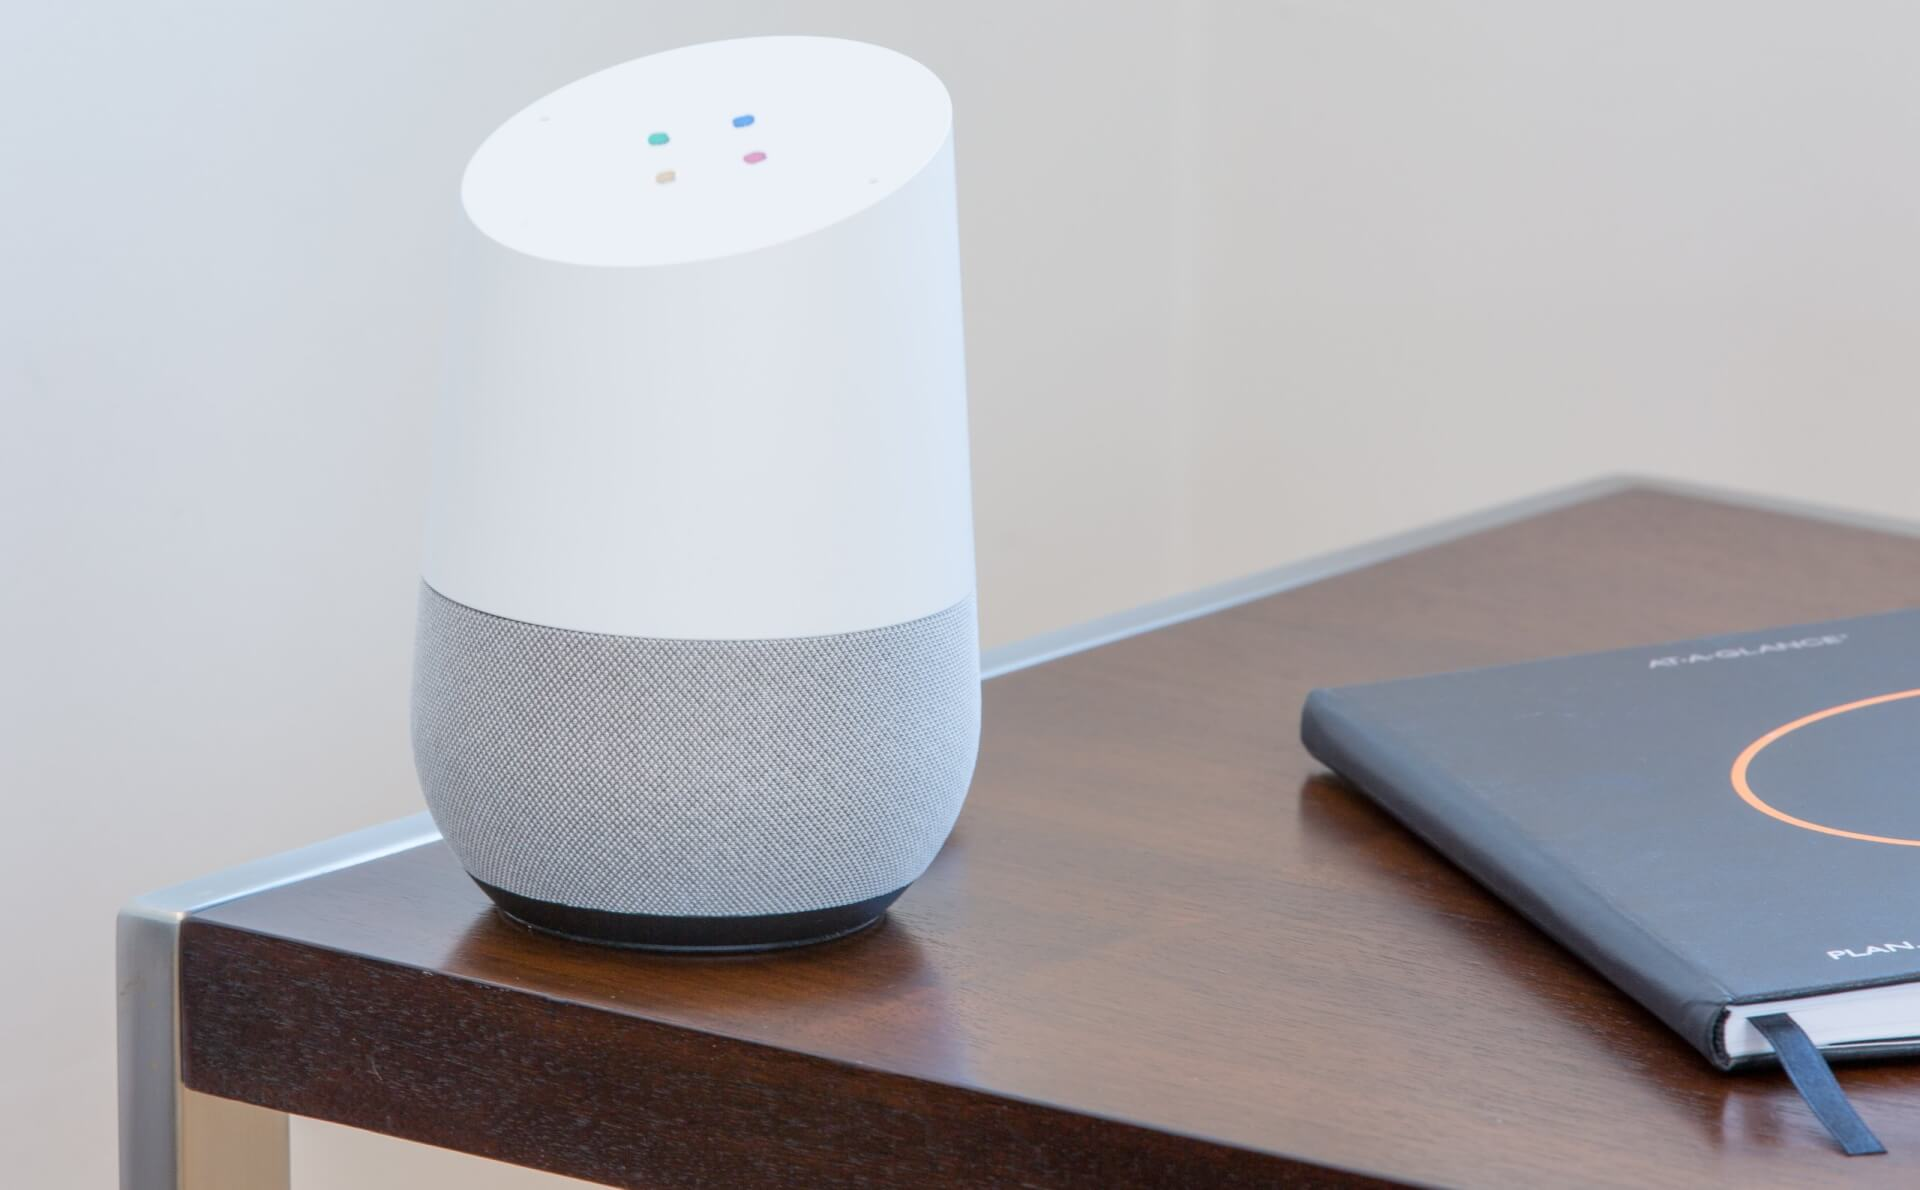 Google is developing 'Prince', a premium smart speaker for homes